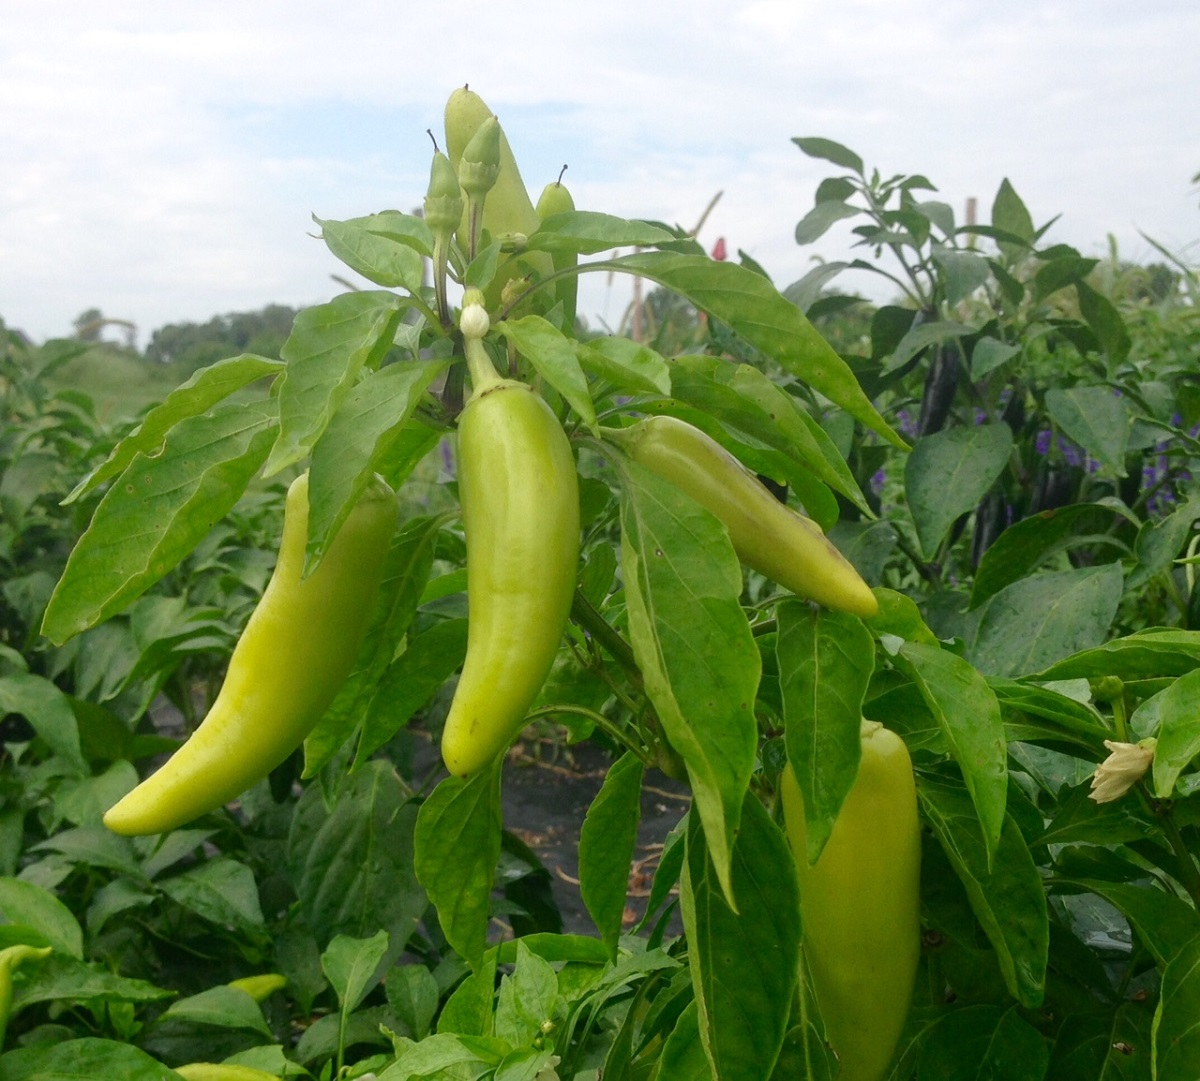 These are Hungarian wax peppers growing in our fields.